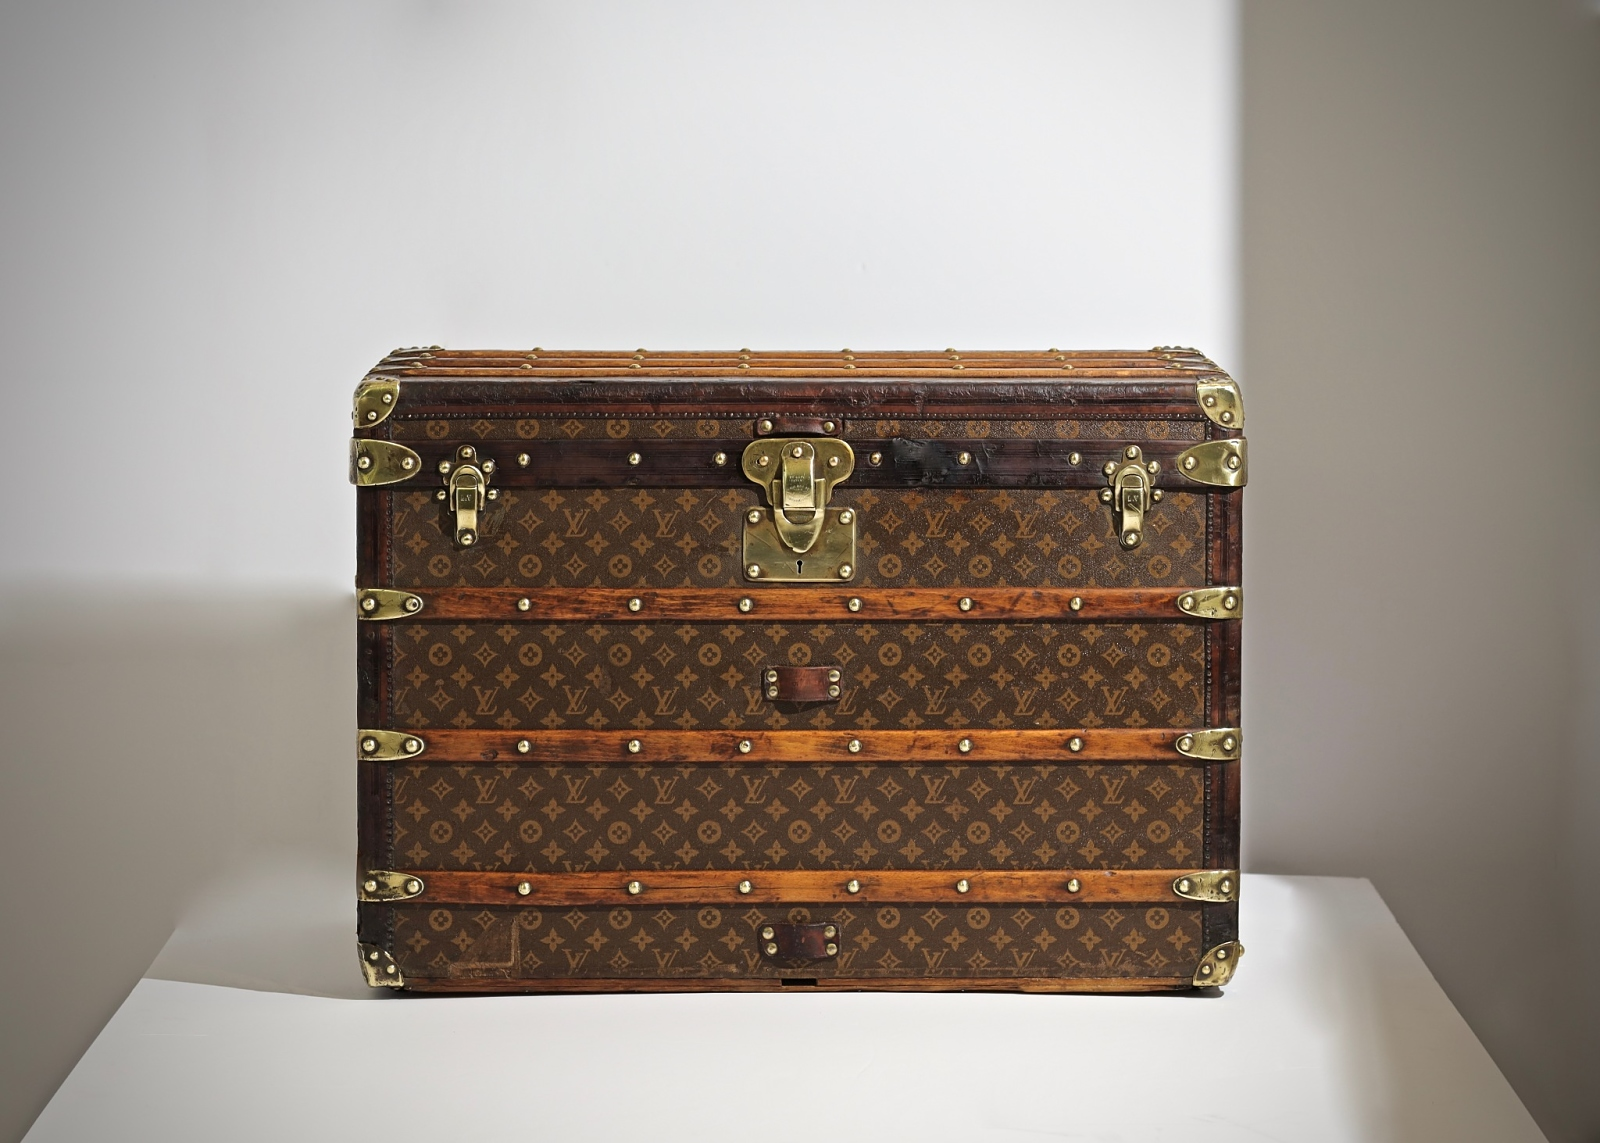 the-well-traveled-trunk-louis-vuitton-thumbnail-product-5502-1